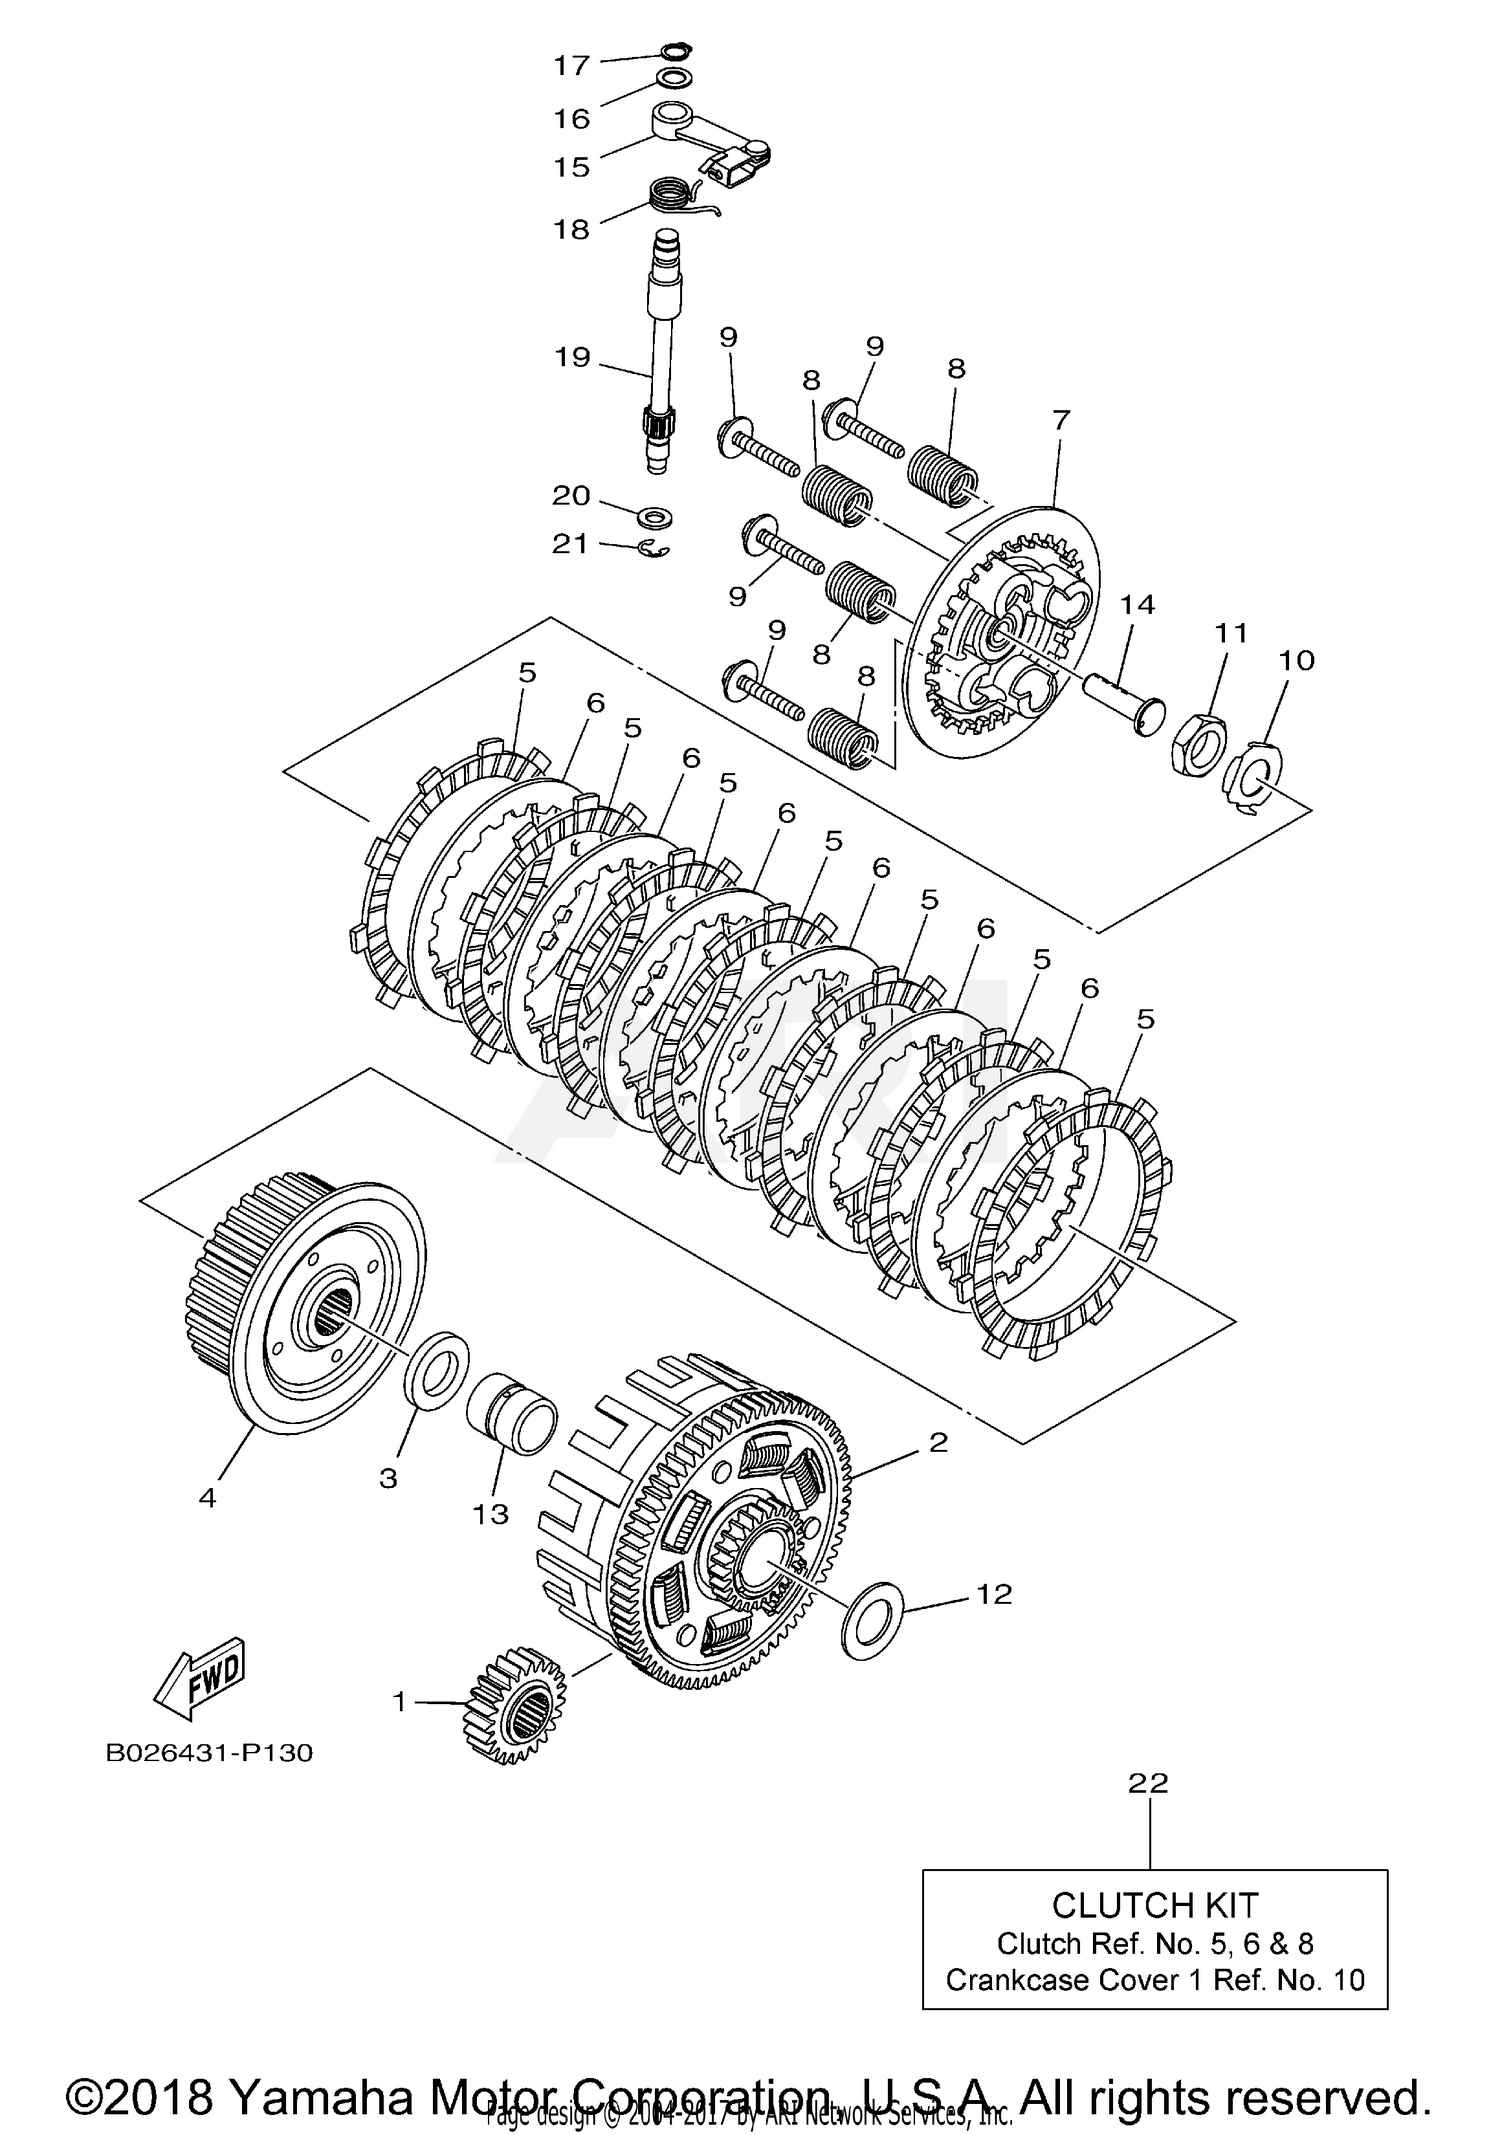 2018 yamaha r3 yzfr3ajb clutch parts best oem clutch Automatic Clutch Parts Diagram schematic search results (0 parts in 0 schematics)